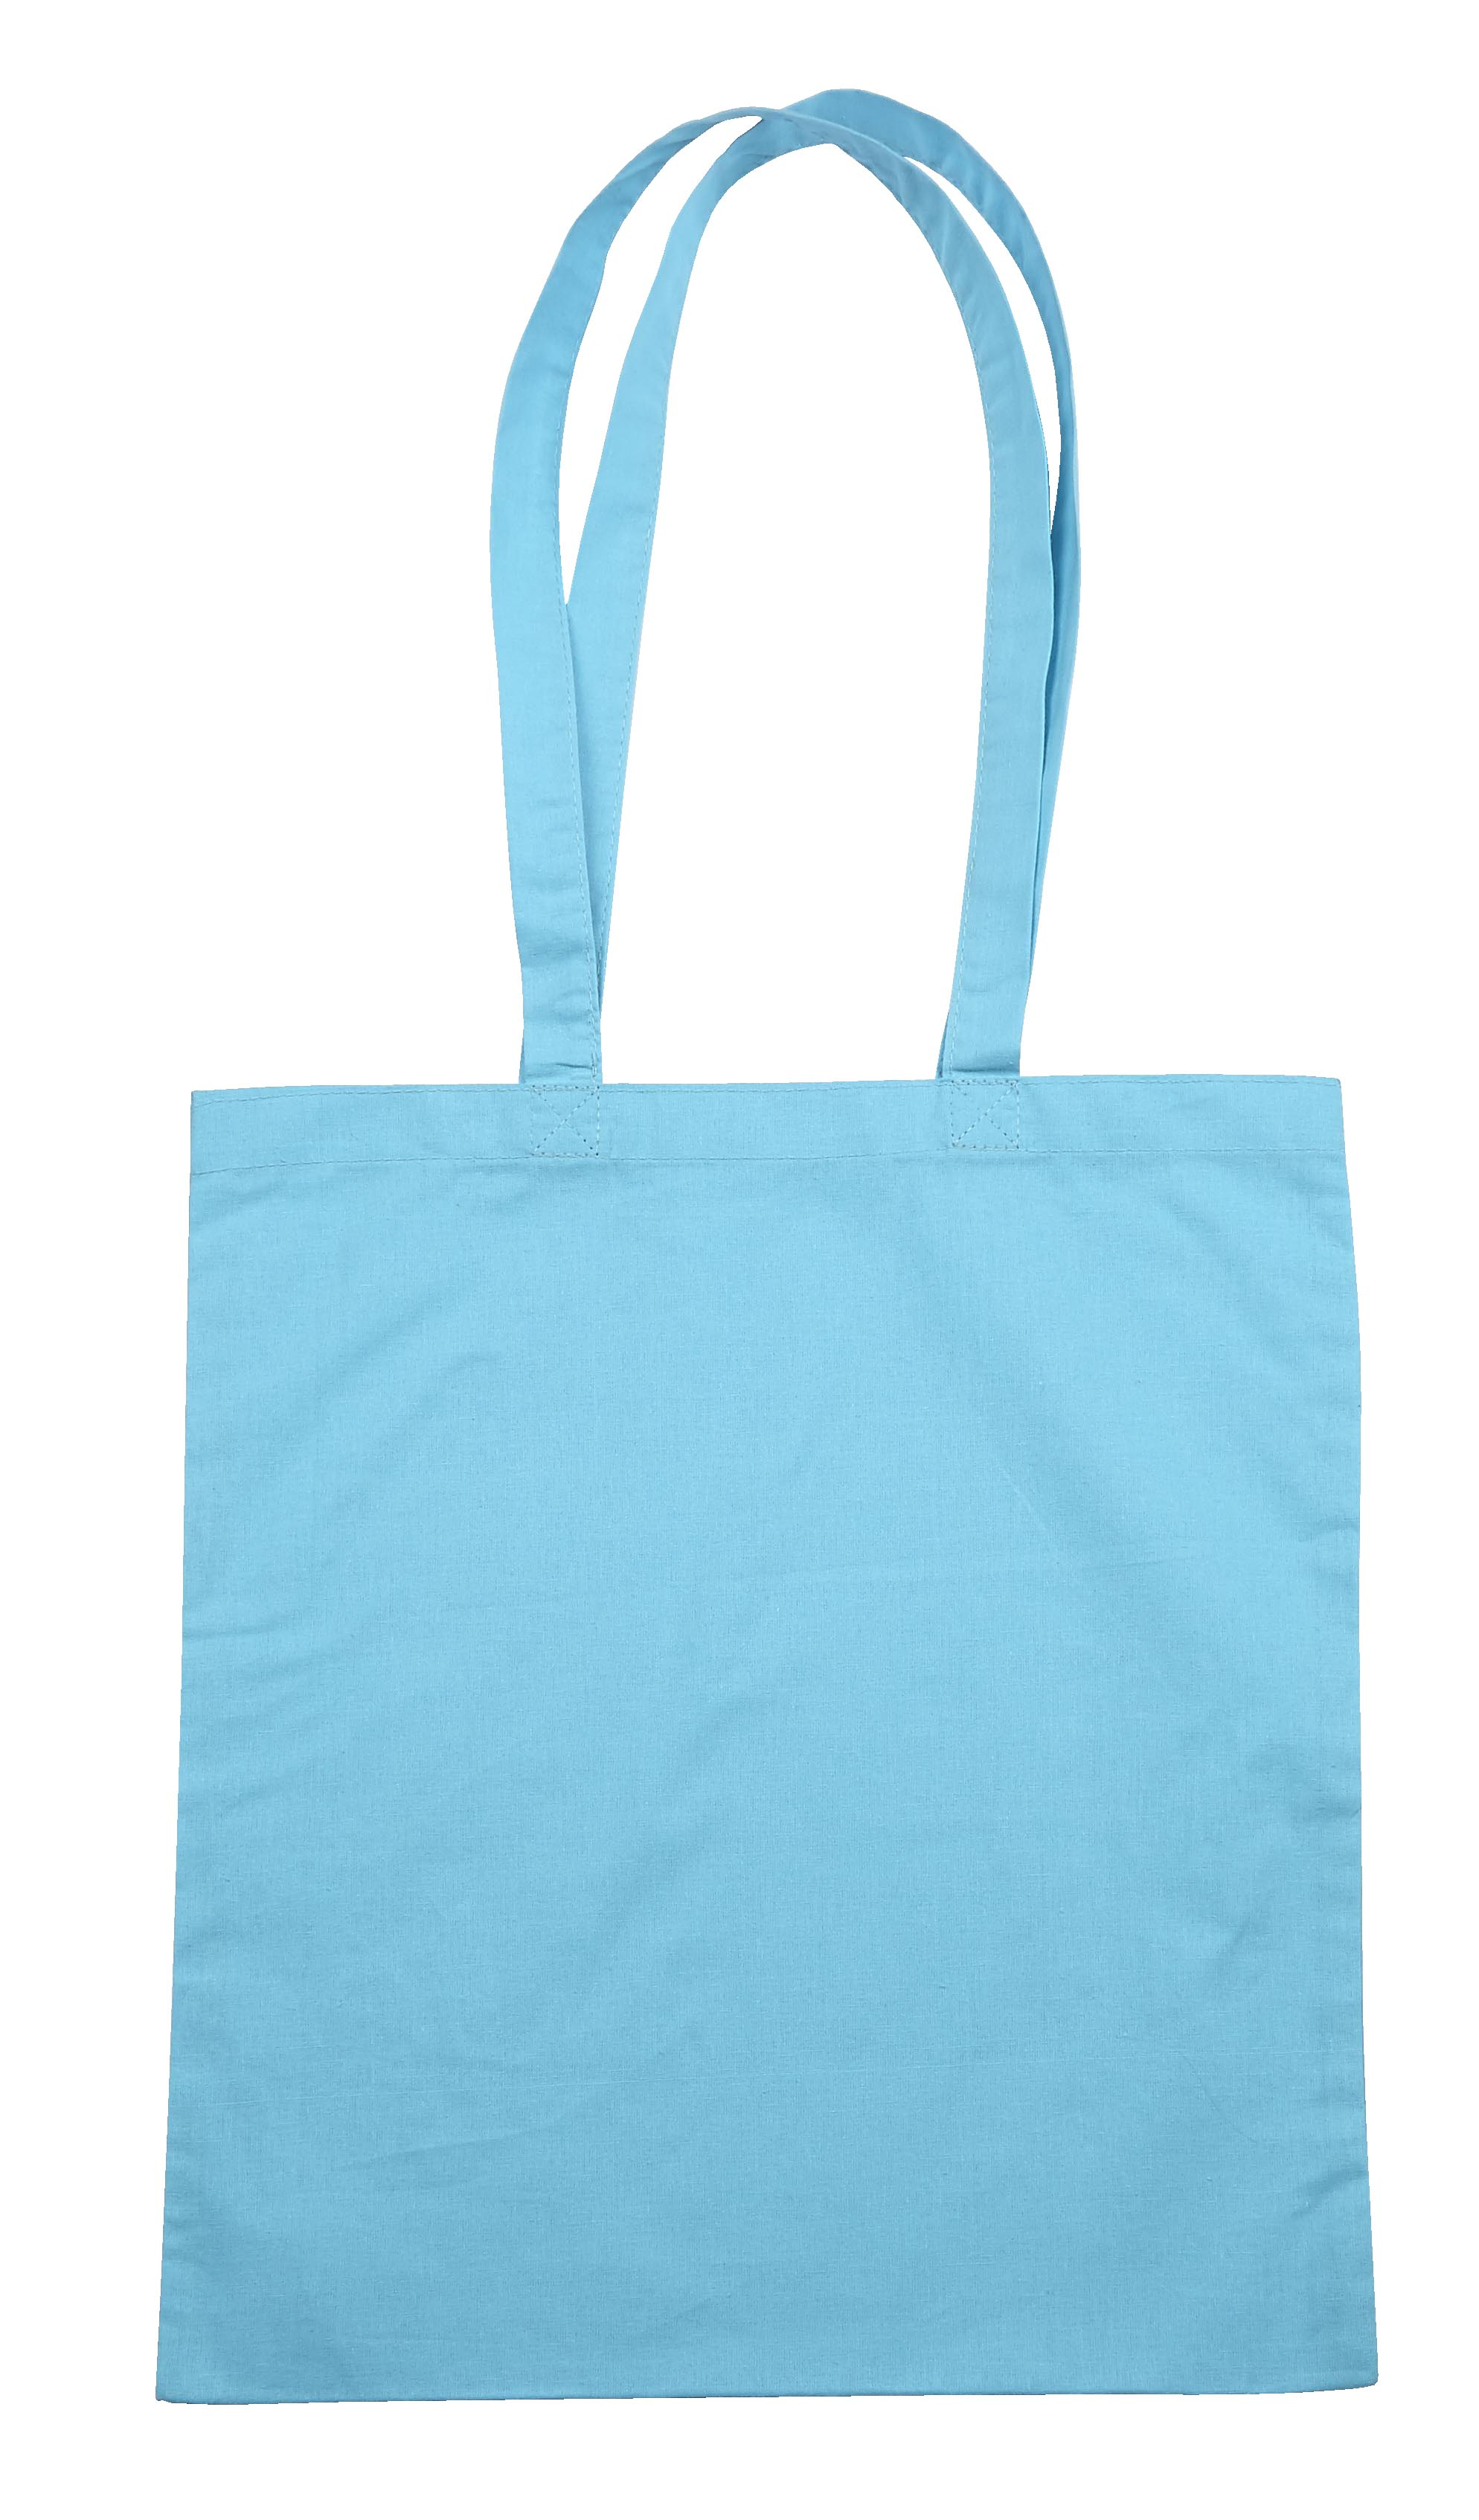 Baby Blue Jute Canvas Cotton Shopper Bag